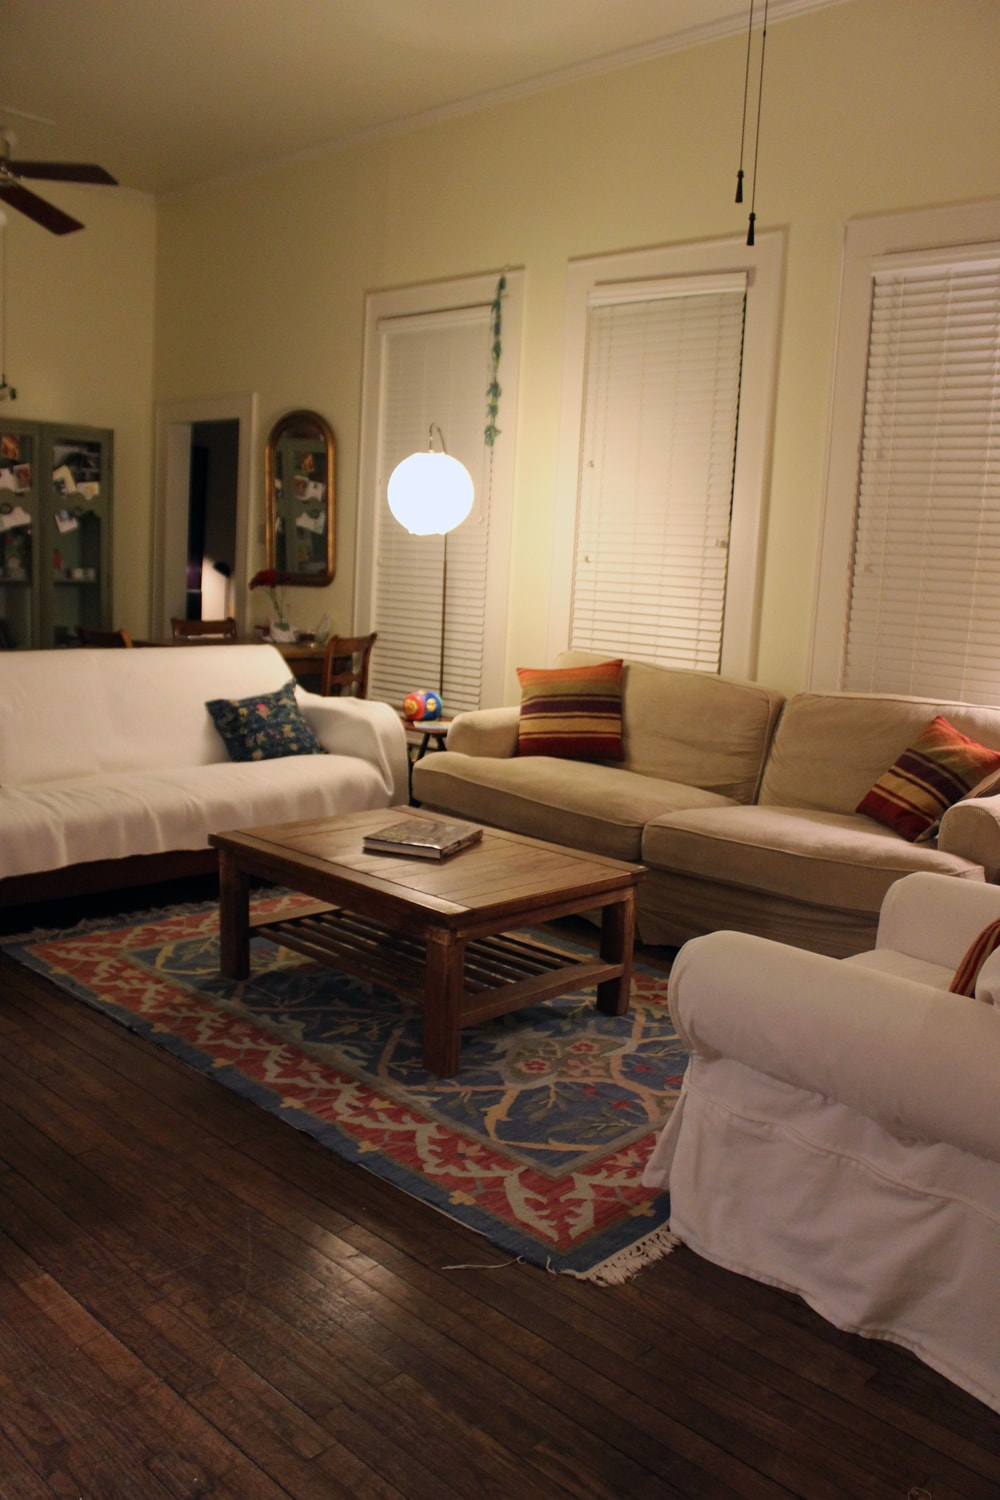 Living Room in the night - Plenty of room to lounge!